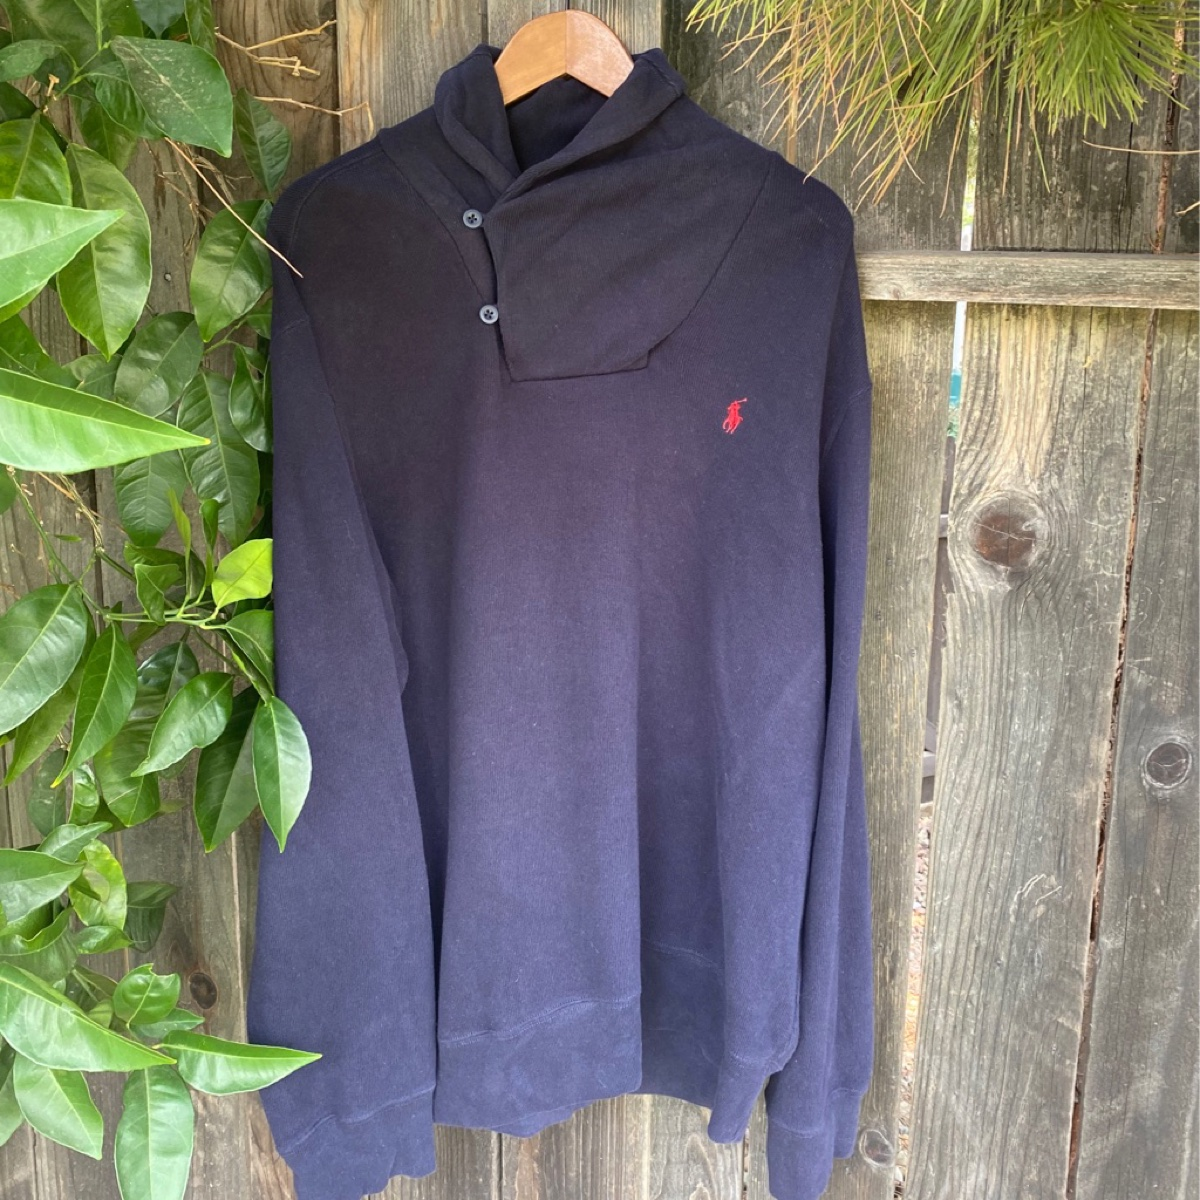 Vintage Ralph Lauren polo sweater